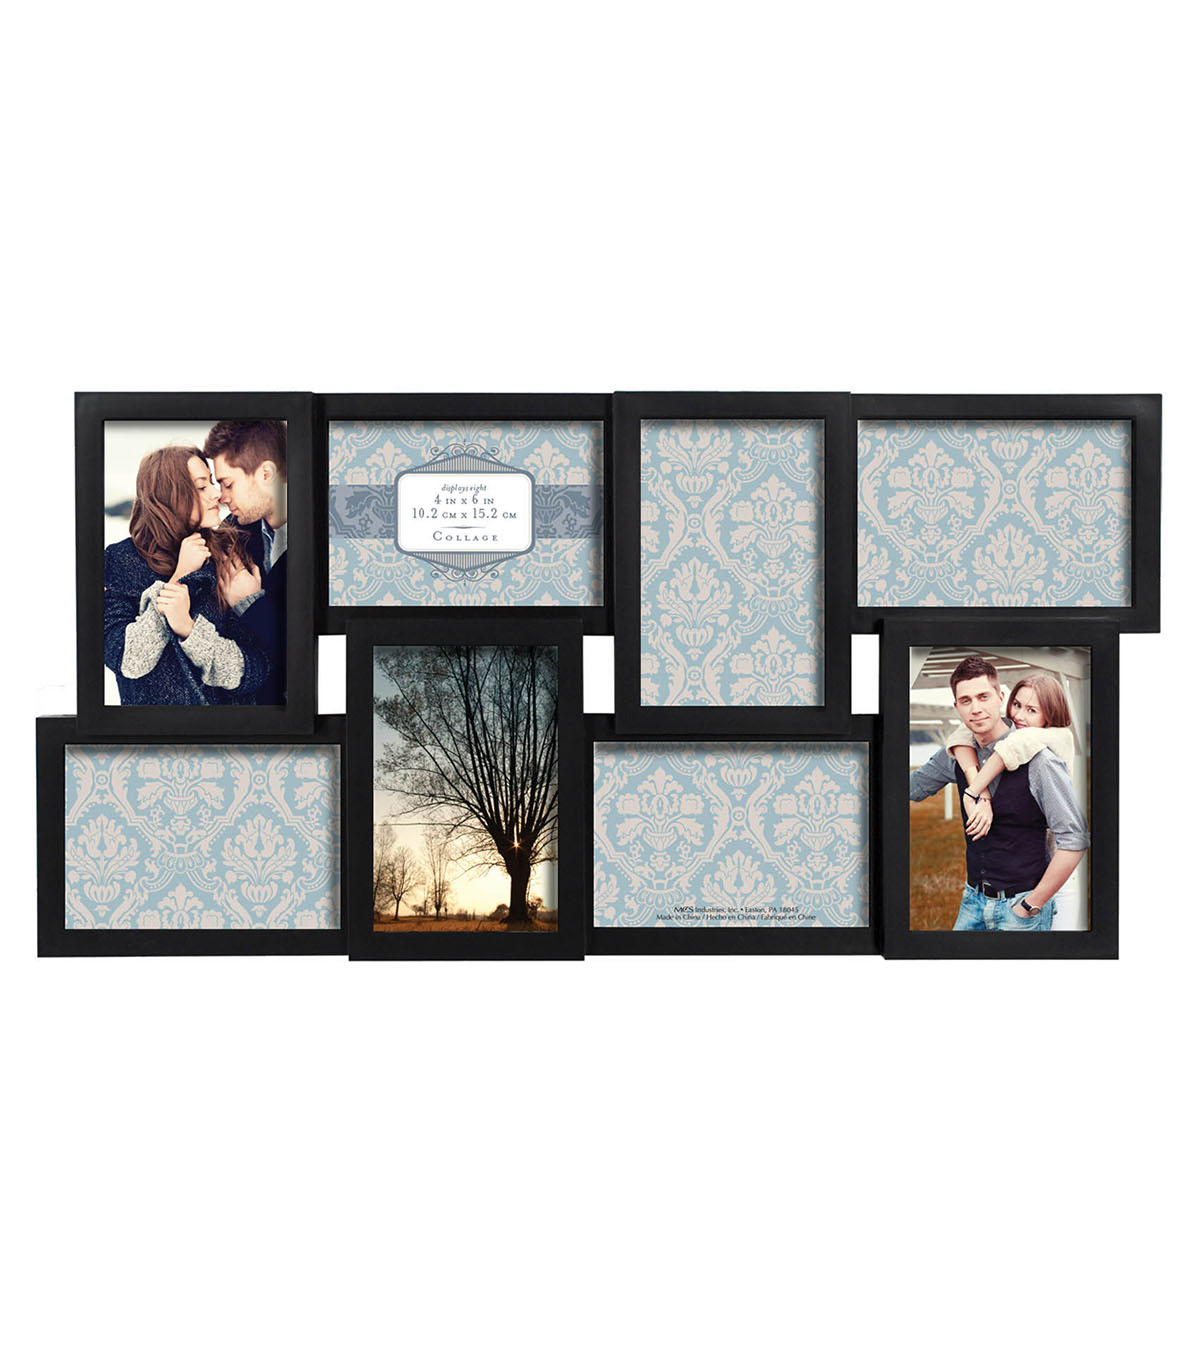 Collage Wall Frame 8 4X6 Openings-Dimensional Black